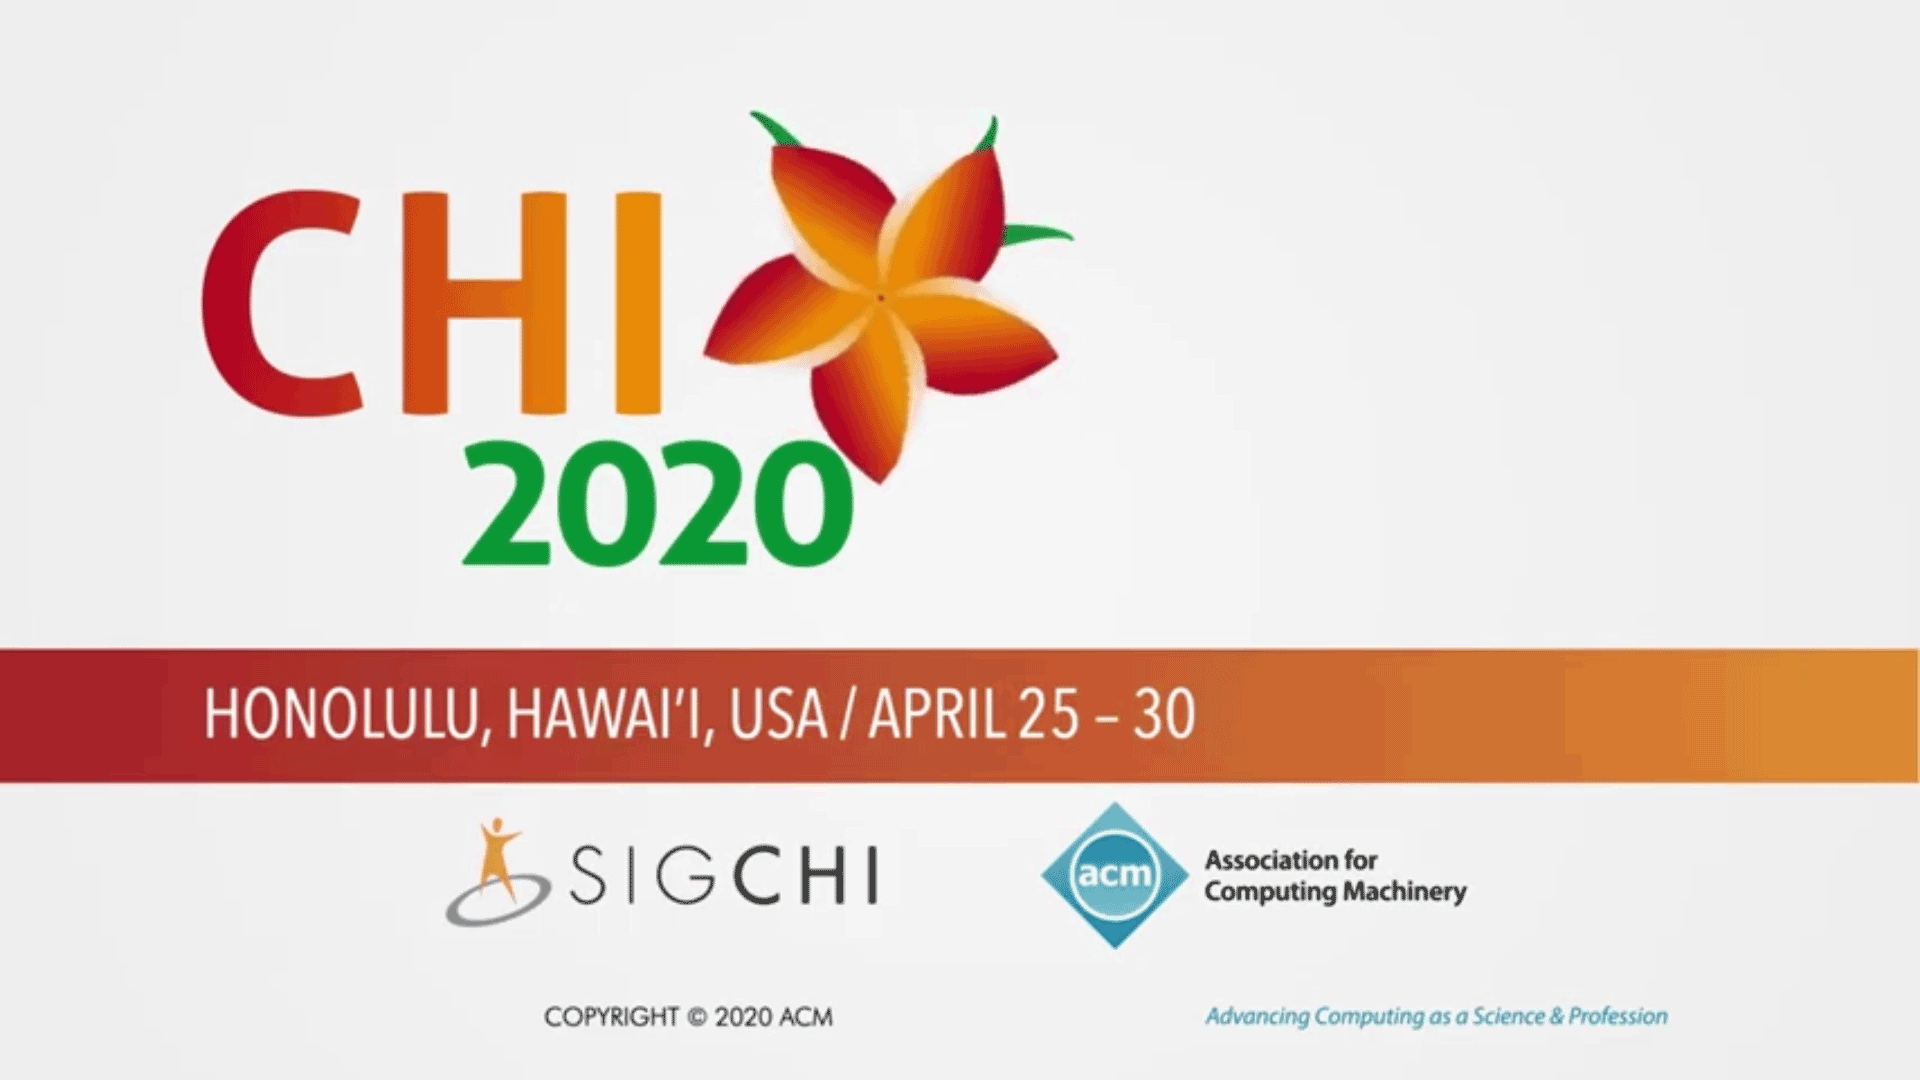 Screen shot from the presentation at CHI 2020.